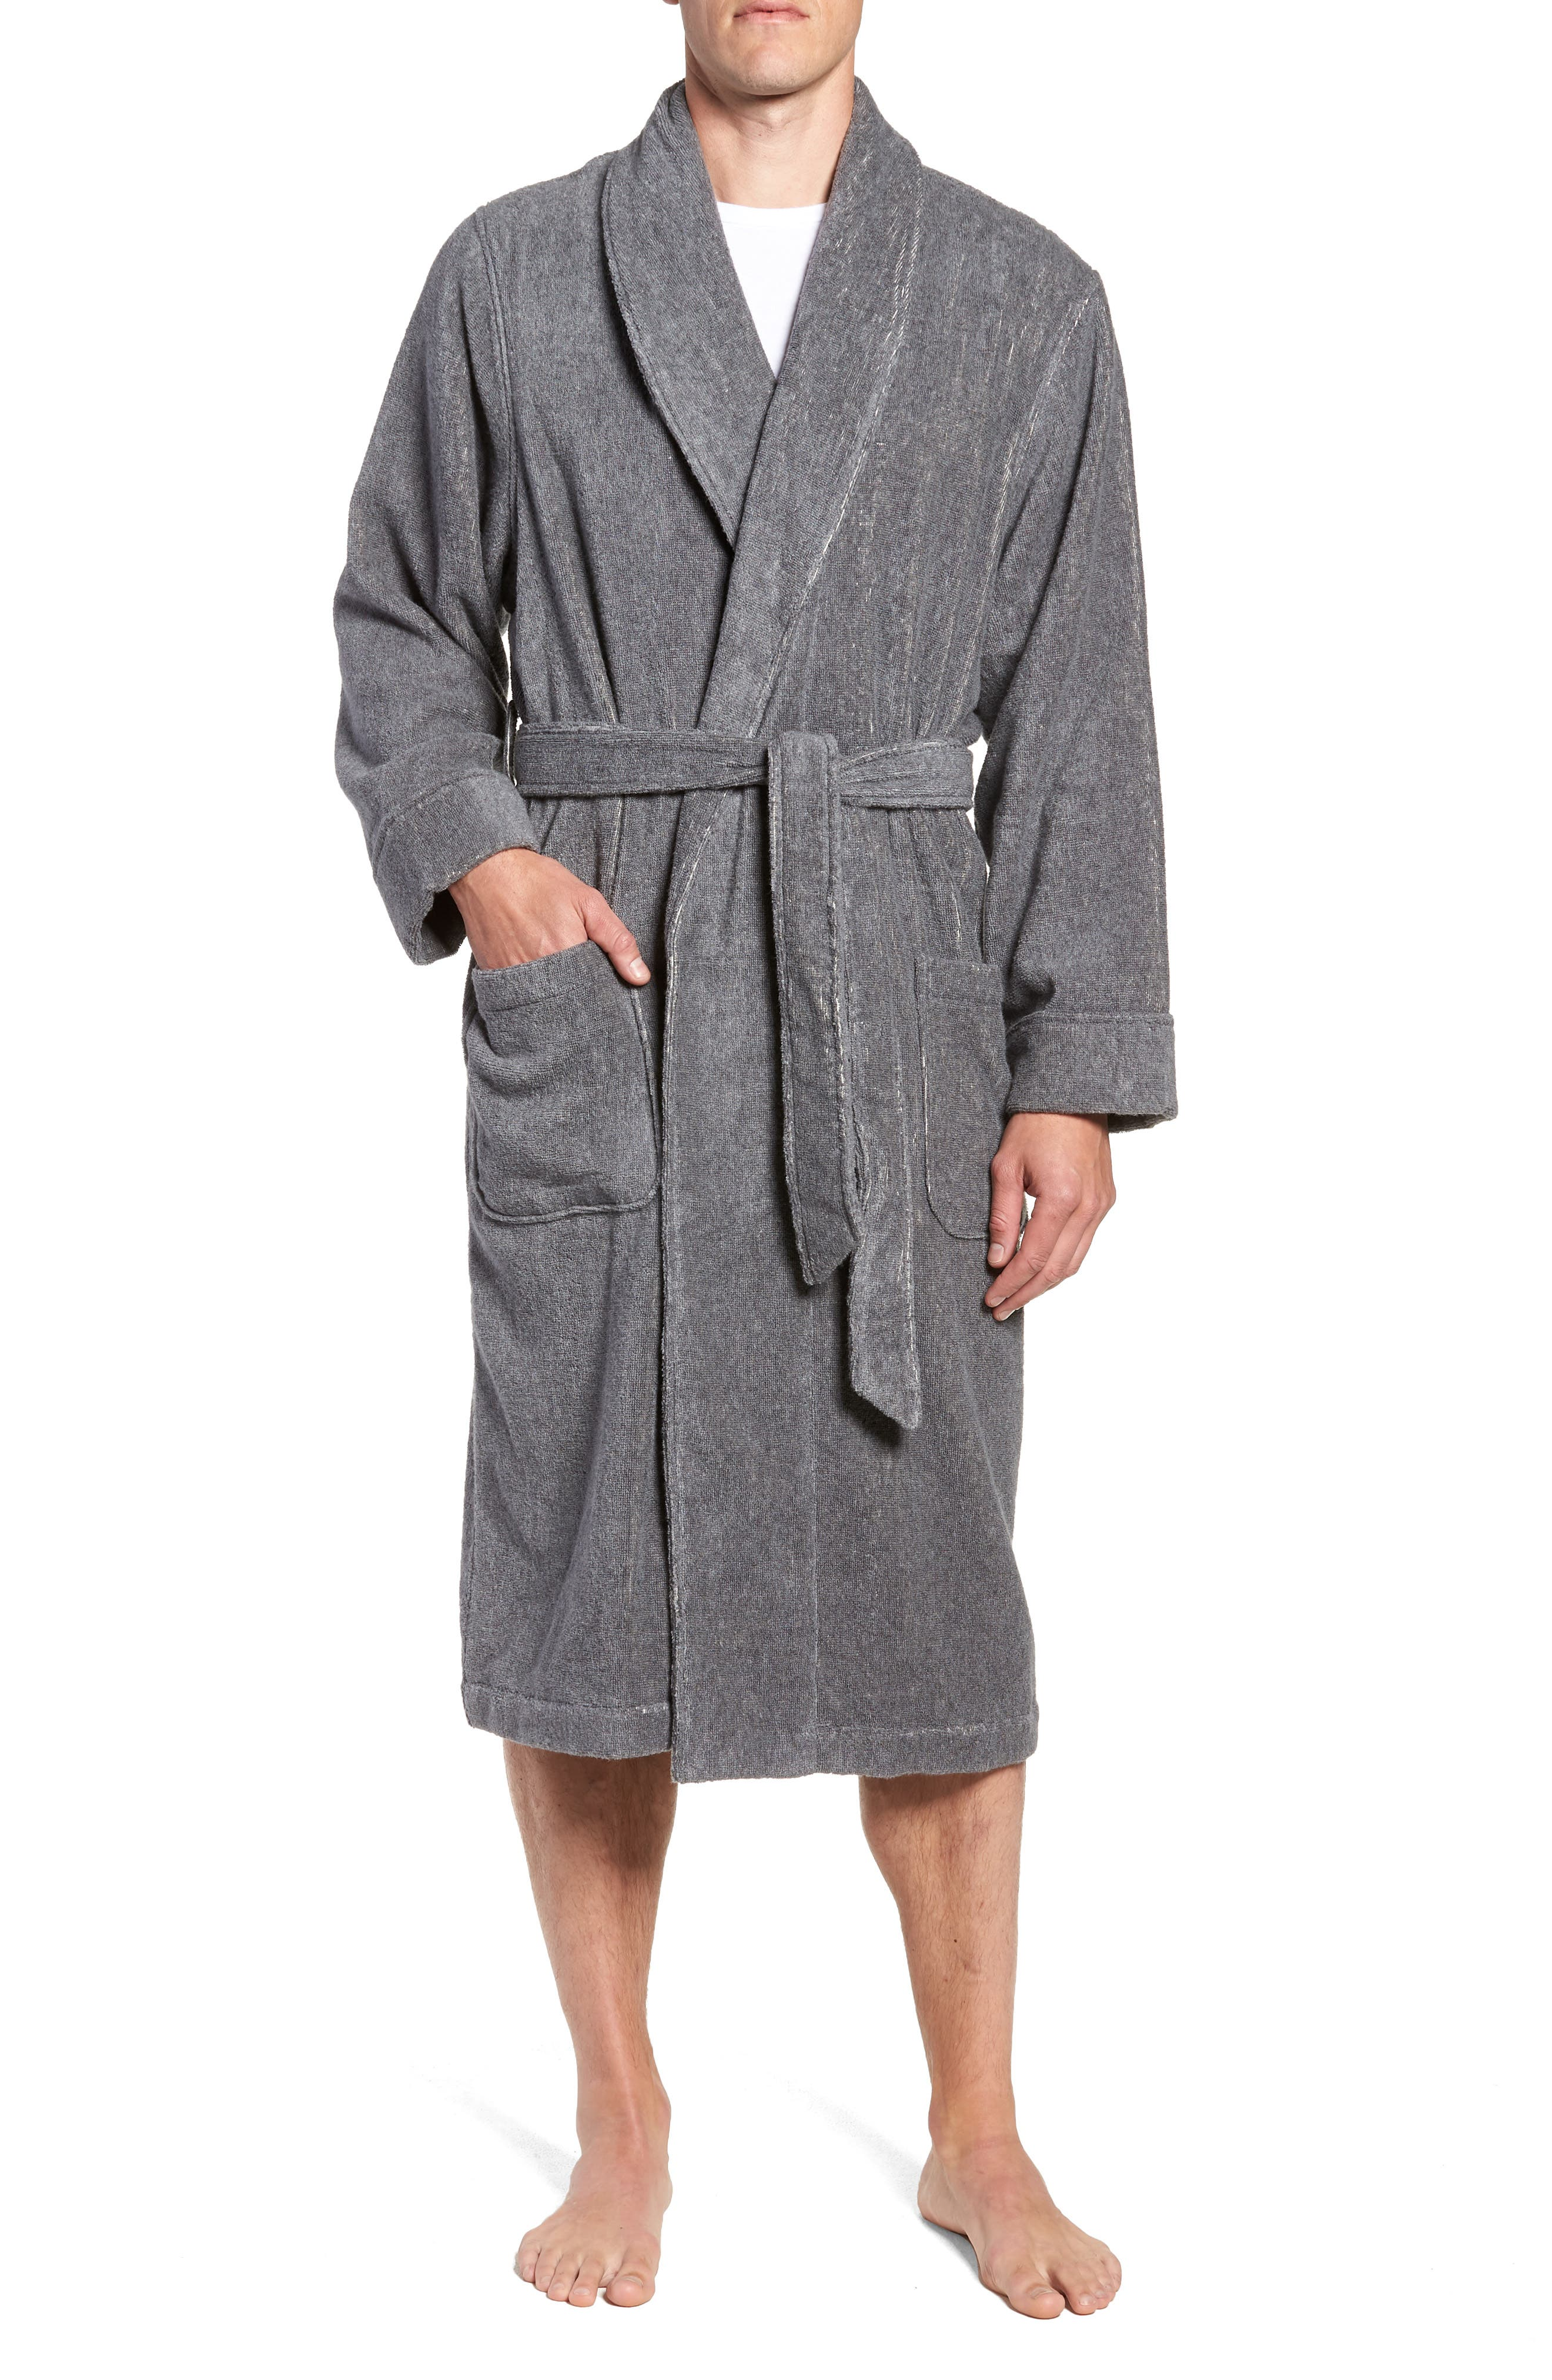 Hydro Cotton Terry Robe,                             Main thumbnail 1, color,                             022